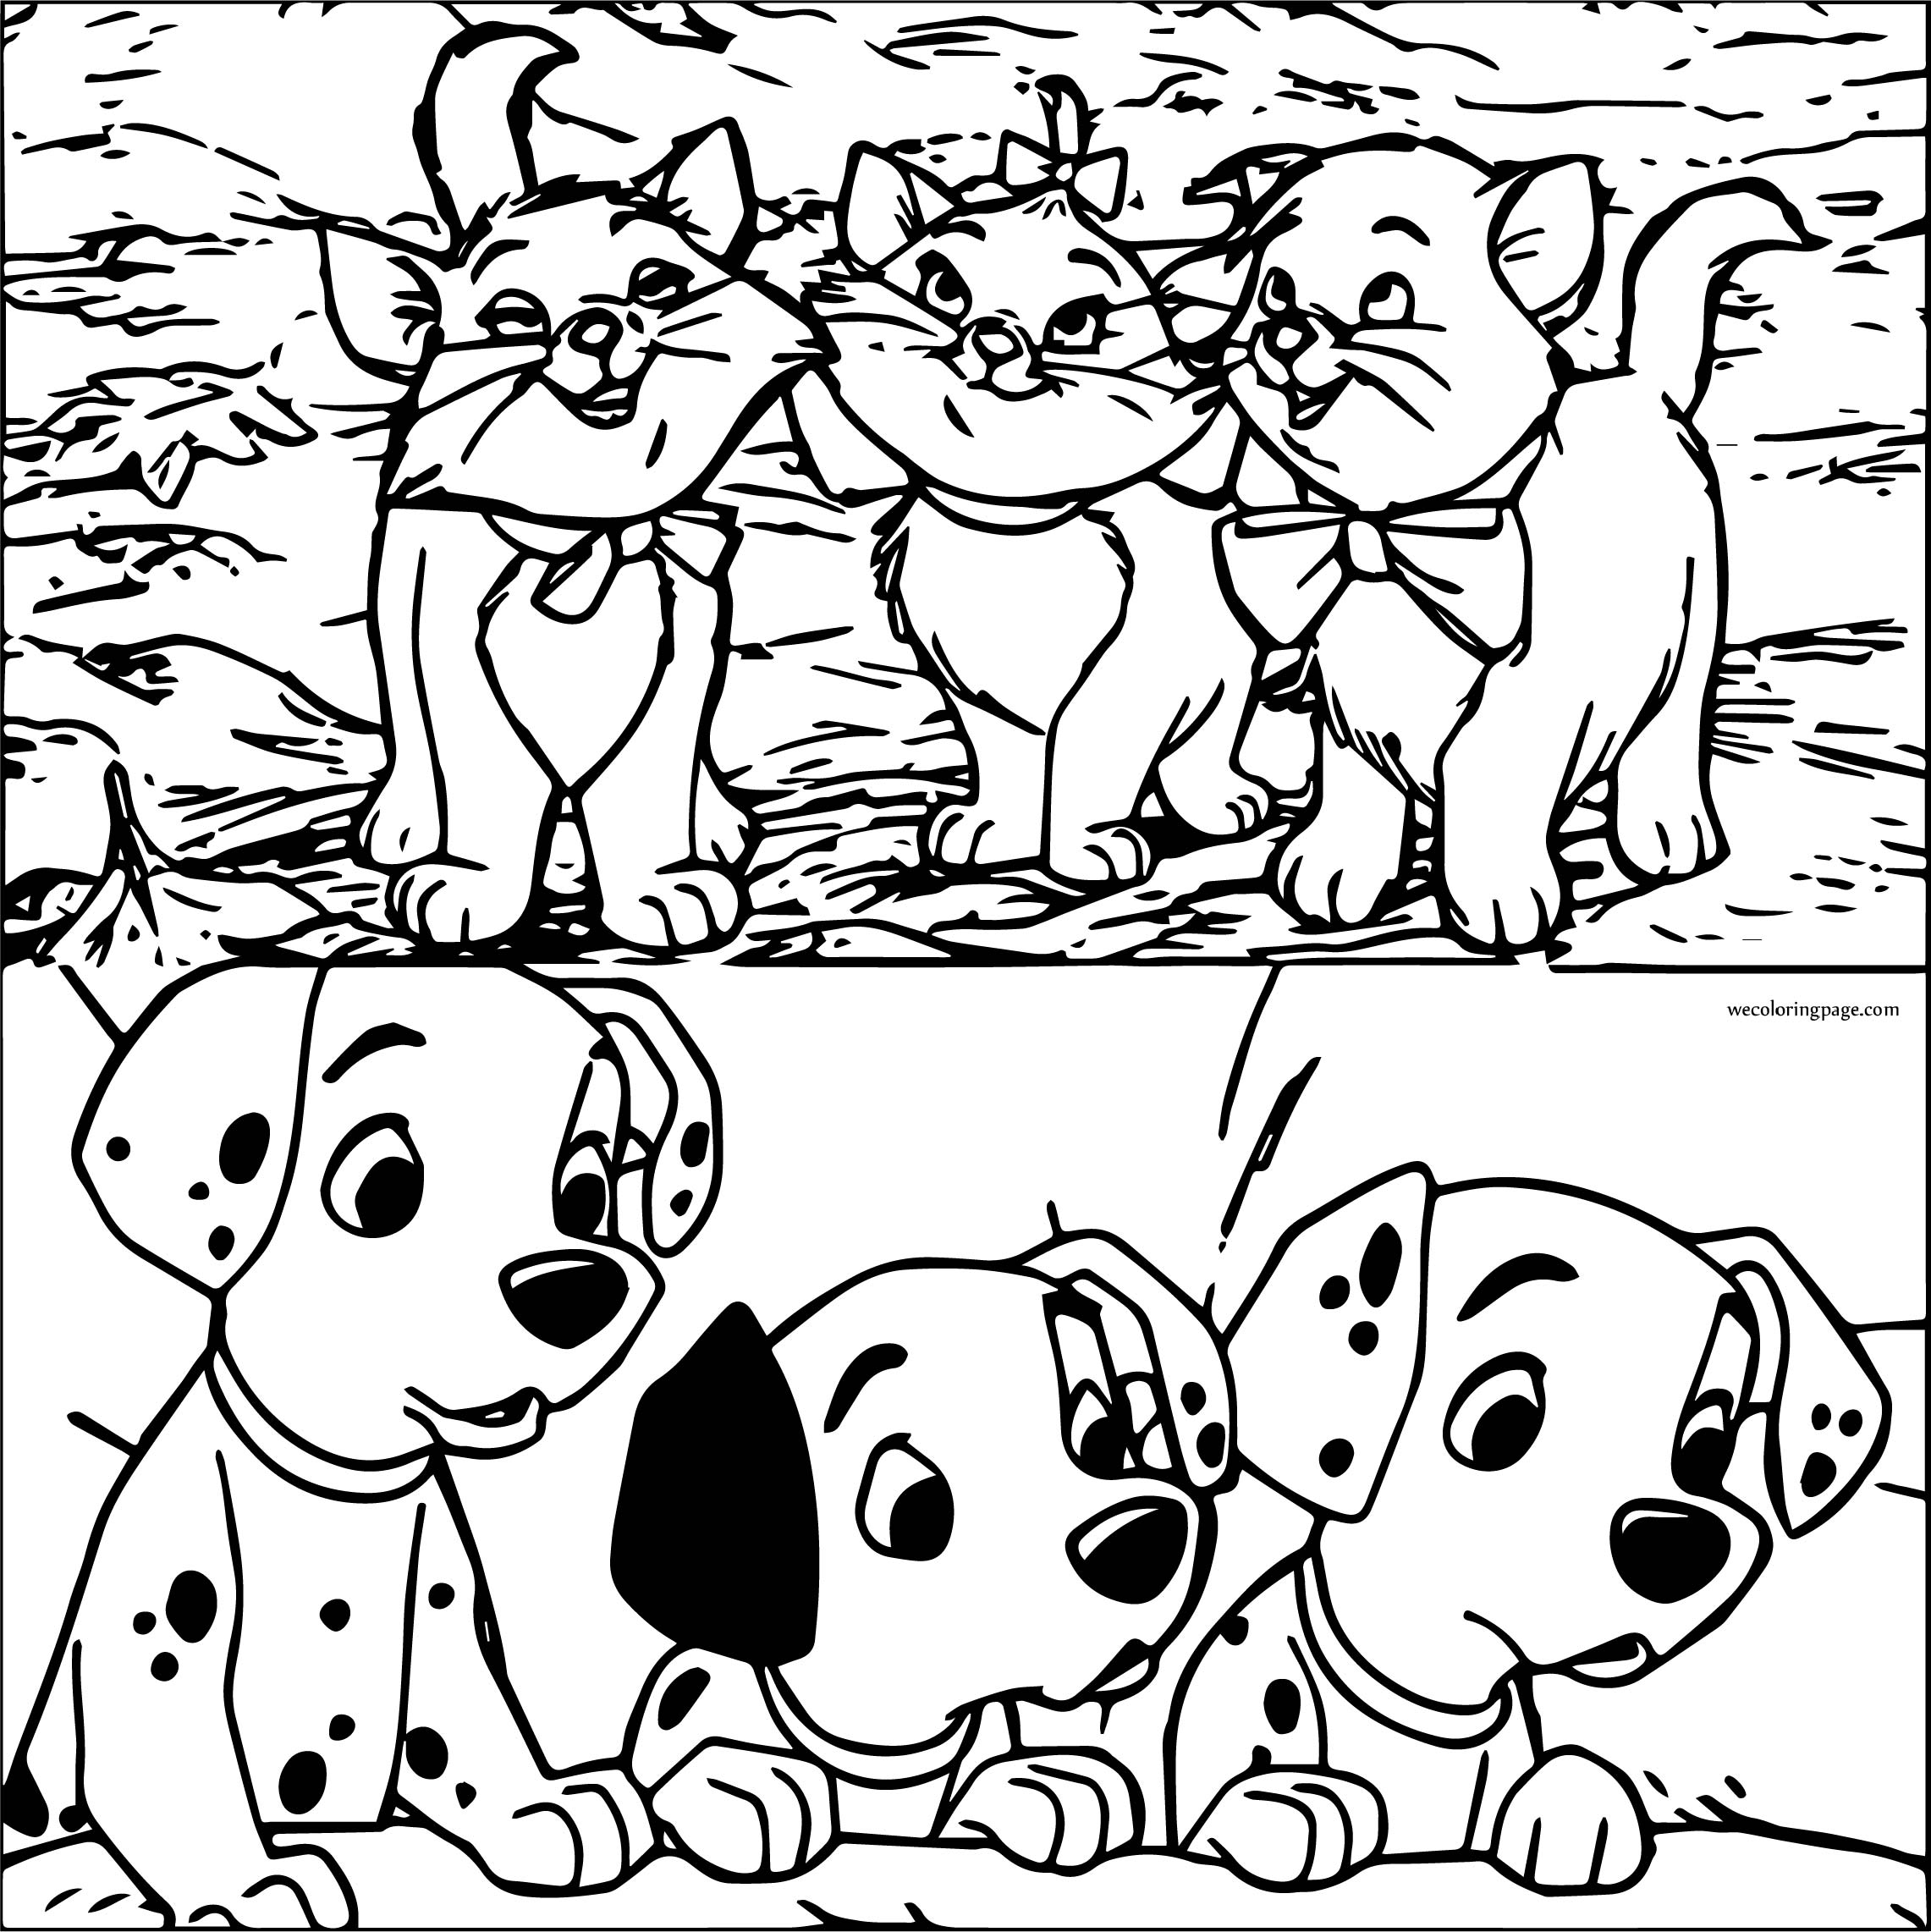 Exelent Aristocats Duchess Coloring Pages Images - Printable ...